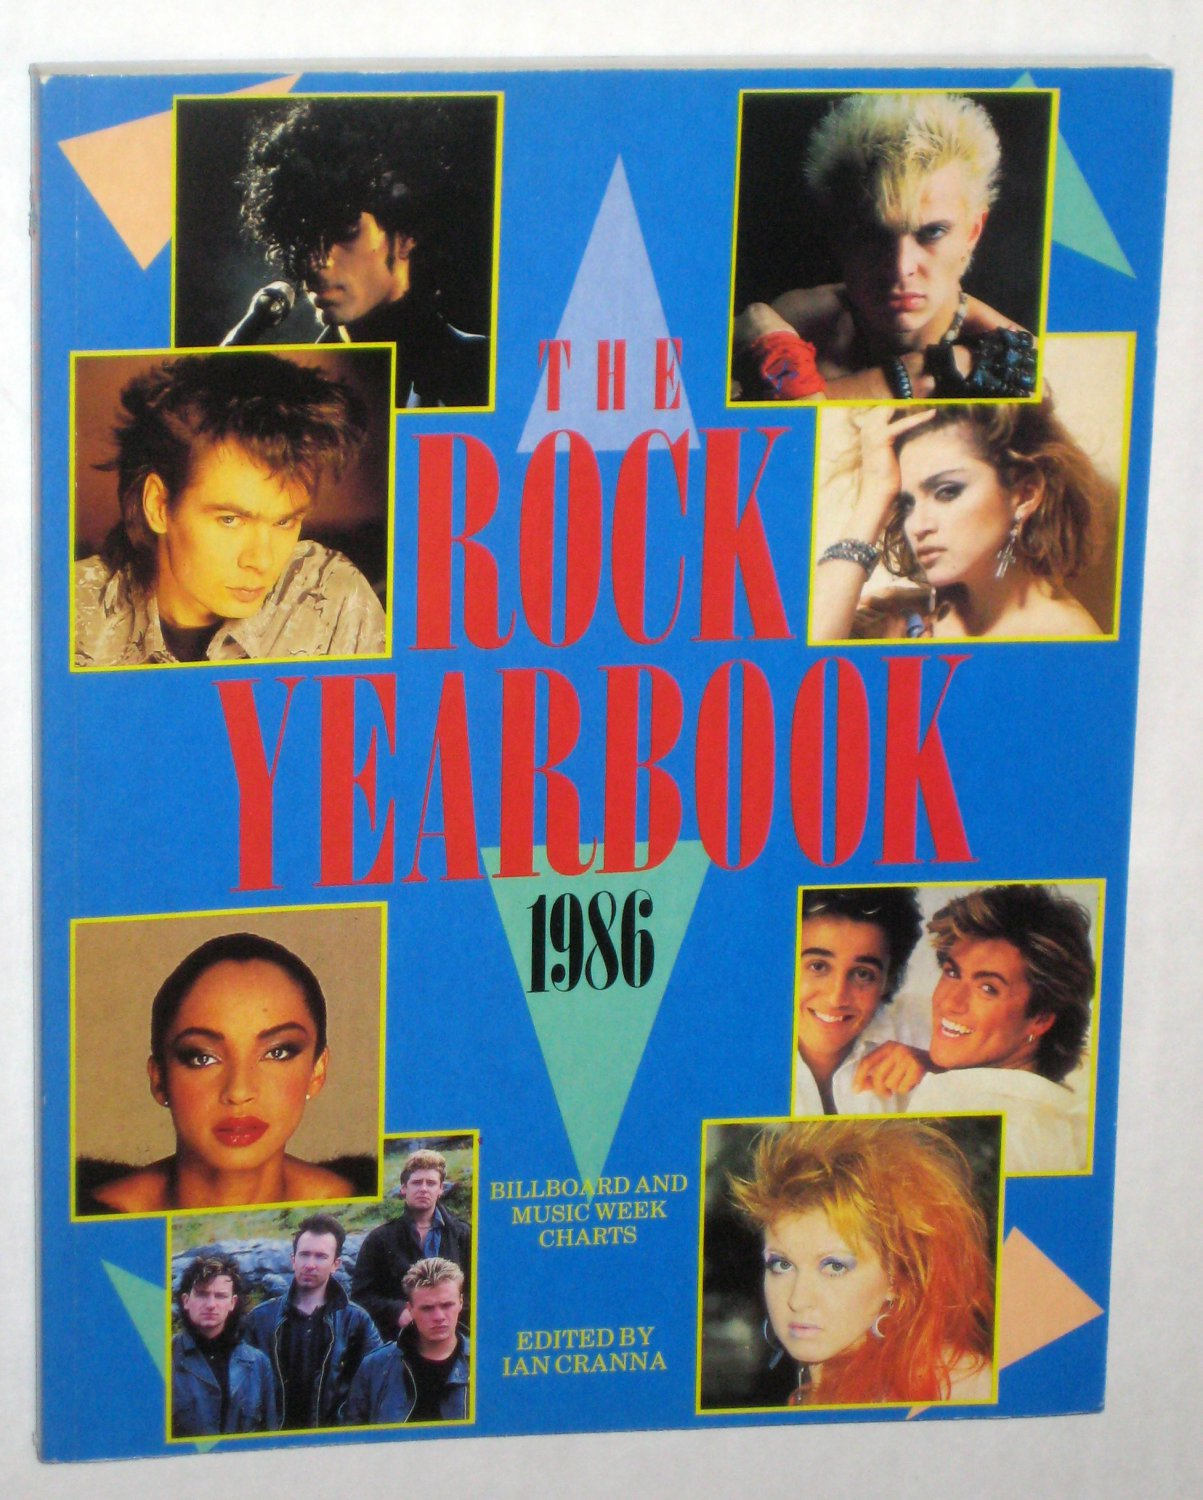 The Rock Yearbook 1986 Softcover Paperback Prince Madonna Sade Year Book Rock and Roll